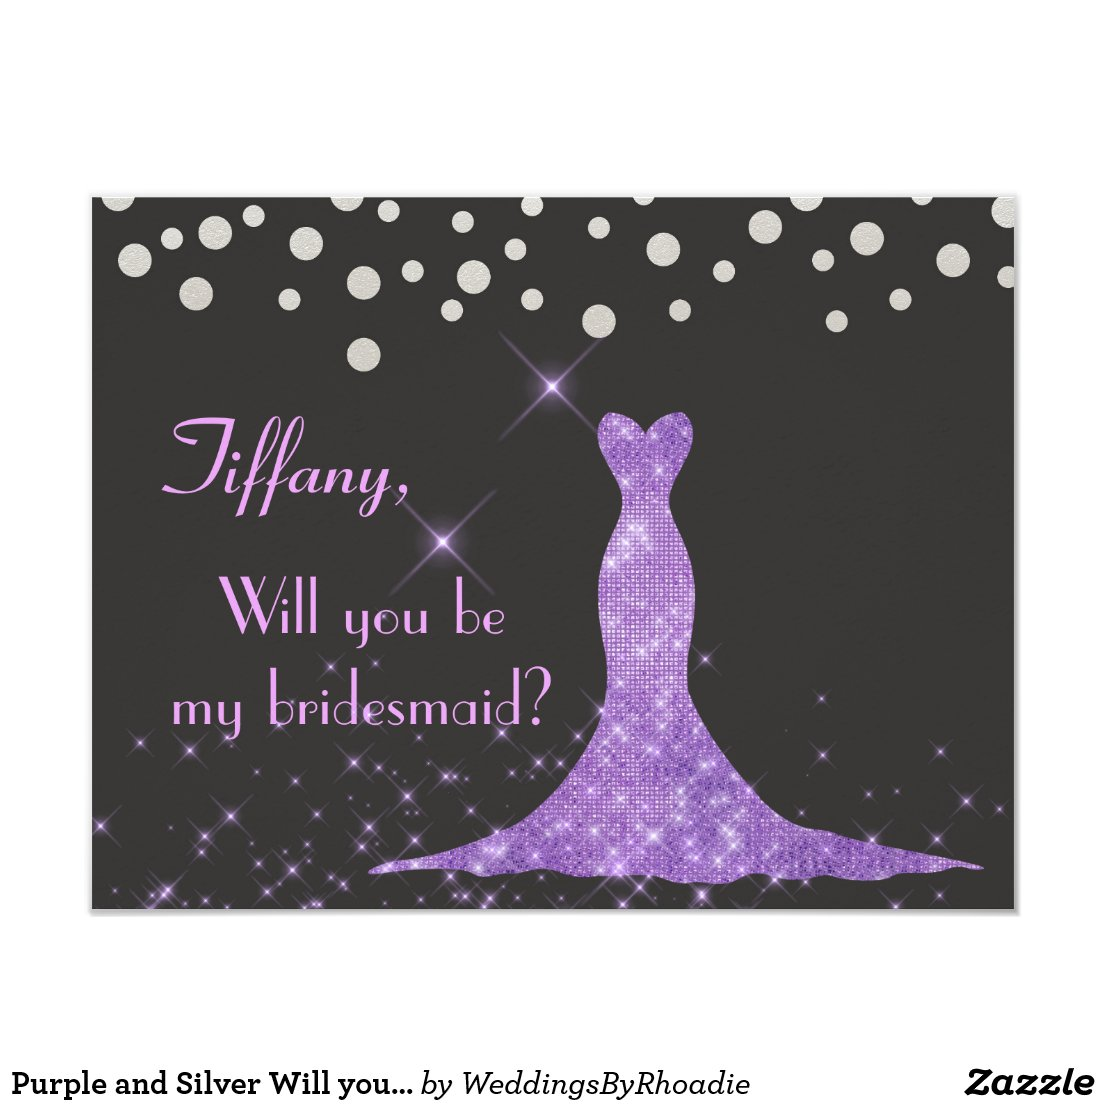 Purple and Silver Will you be my bridesmaid?